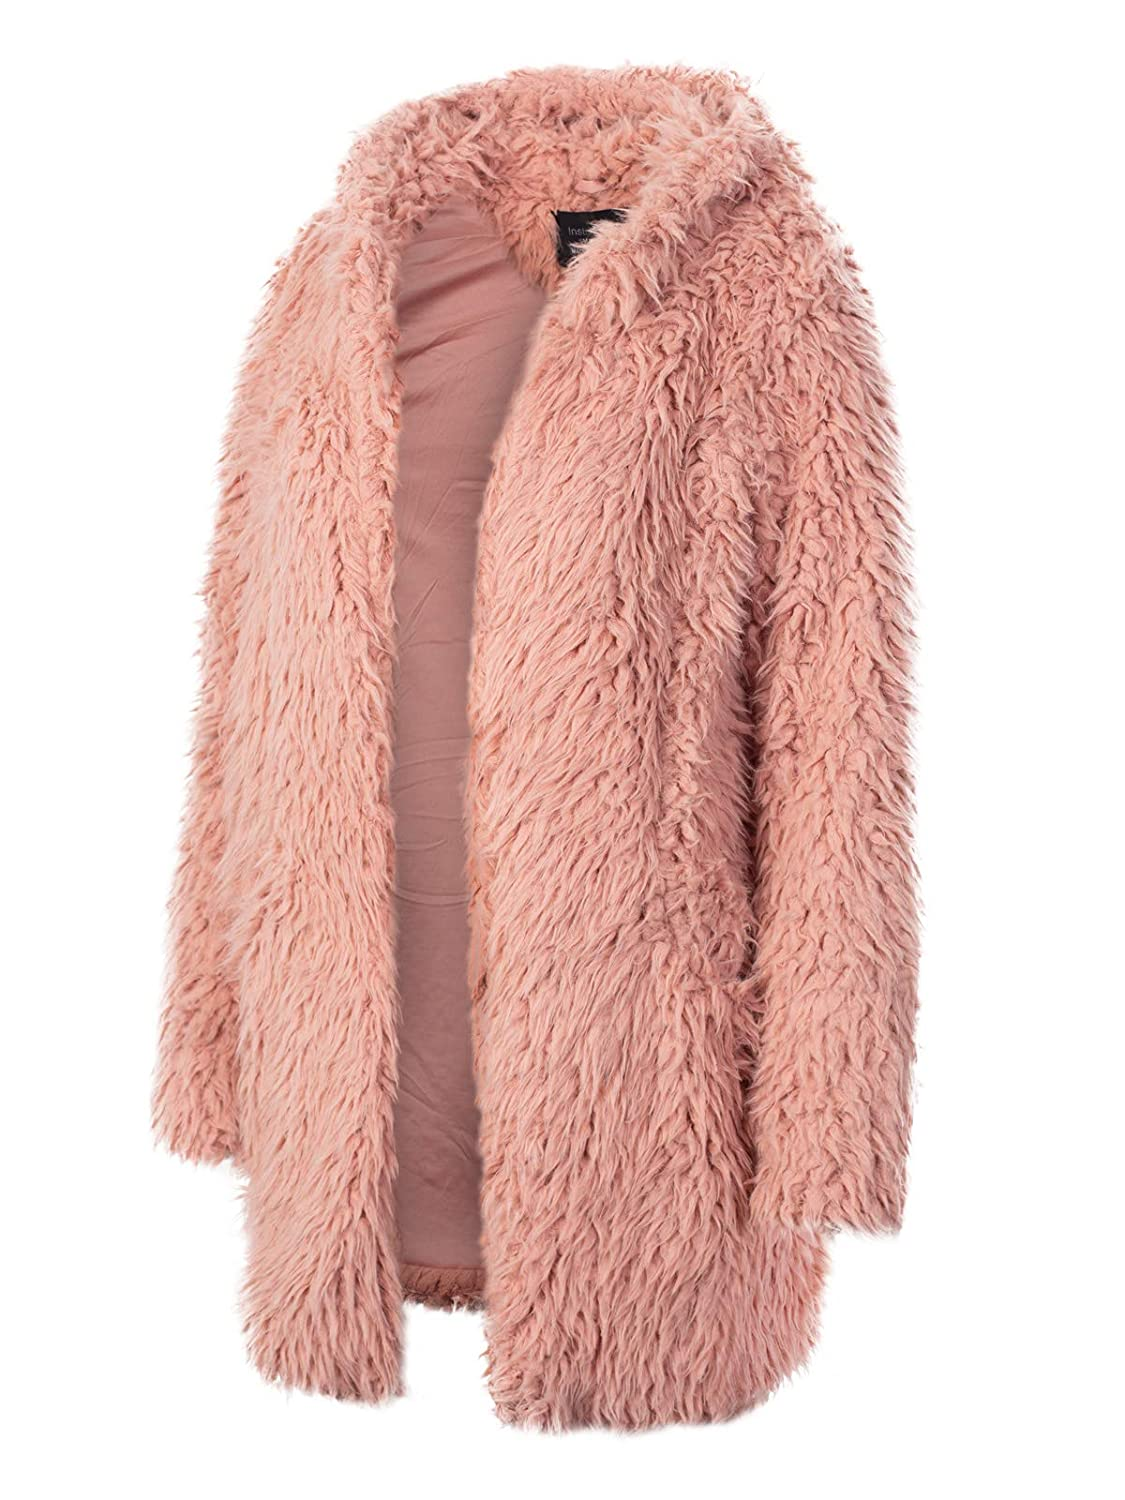 Ijkw043 Mauve Instar Mode Women's Casual Warm Fluffy Faux Fur Oversized Outerwear Jacket Cardigan